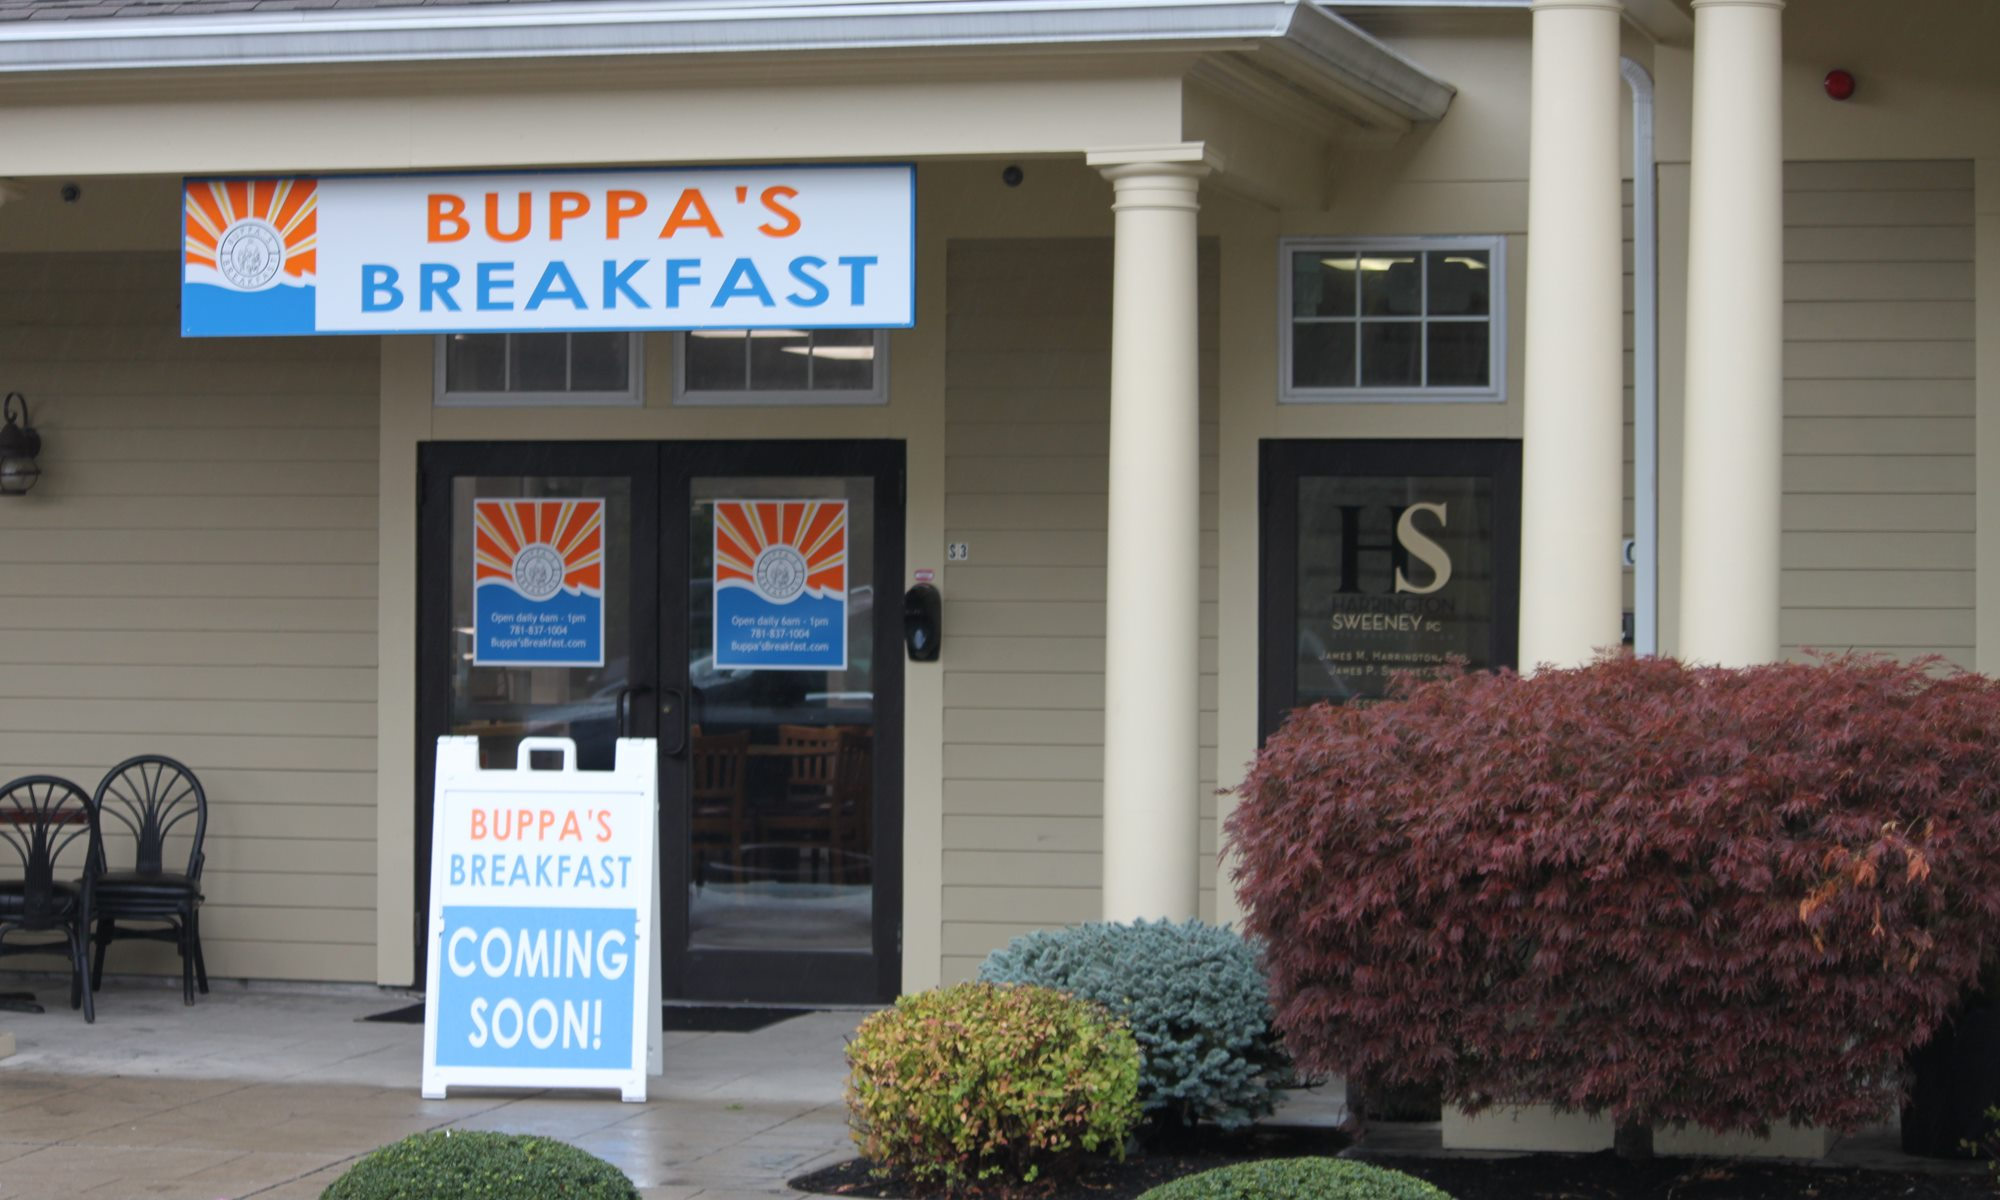 Buppa's Breakfast Coming Soon